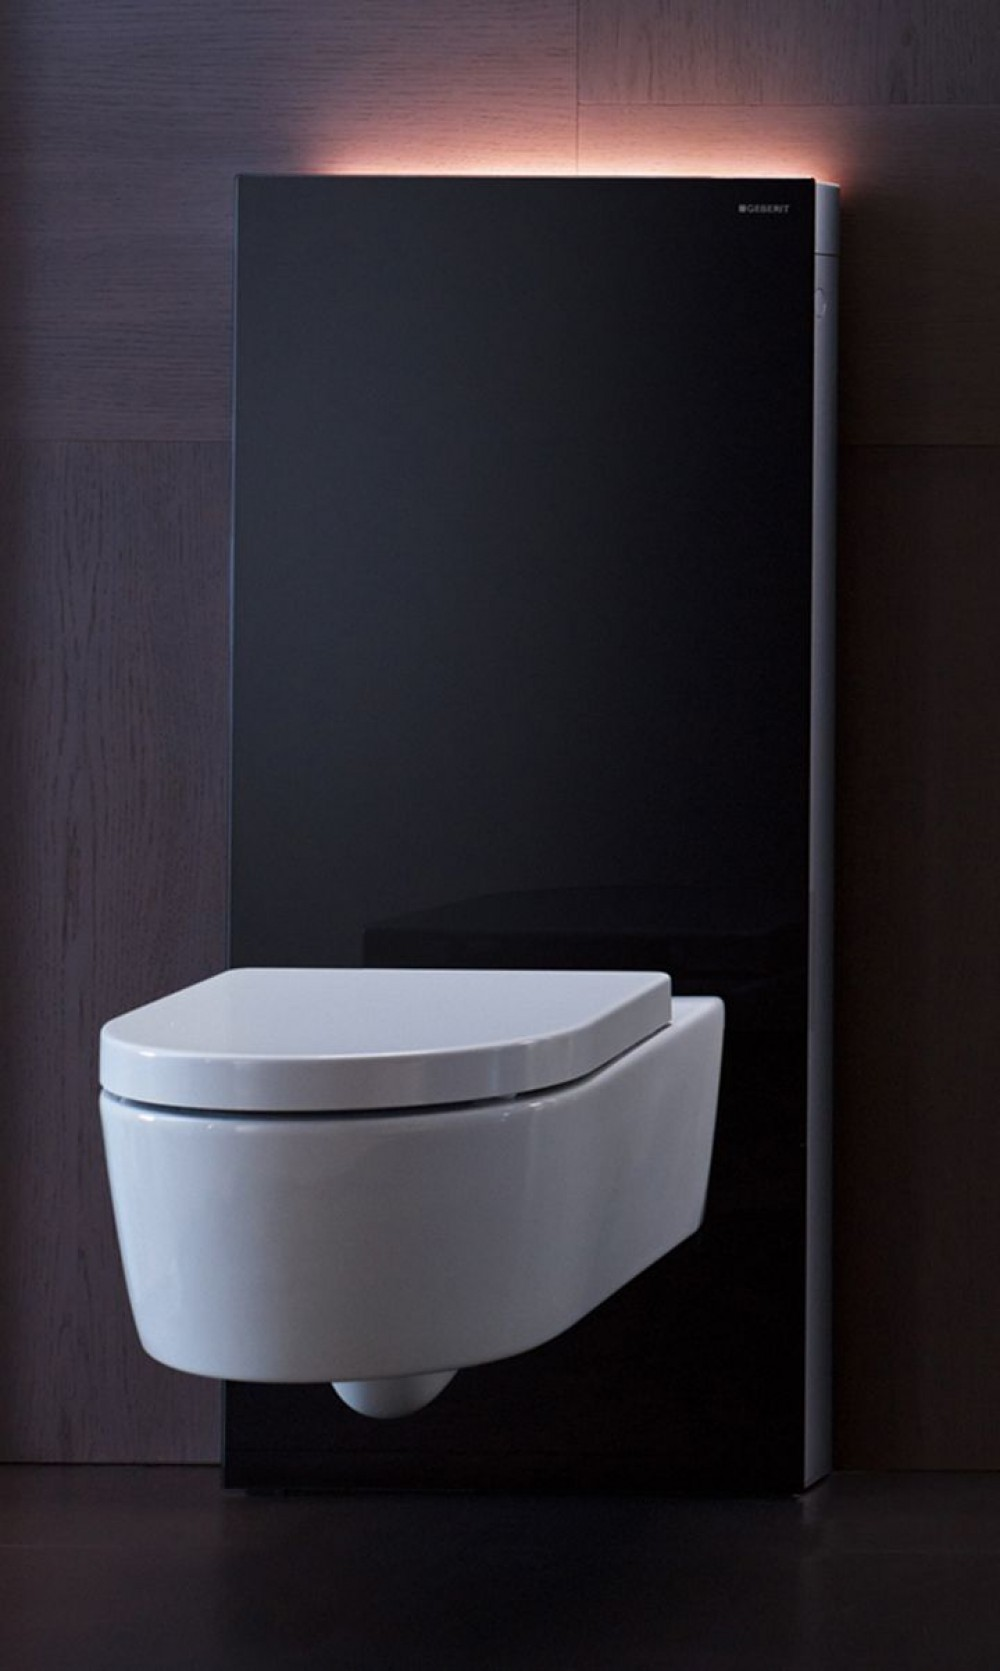 geberit monolith plus sanit rmodul f r wand wc h 101 cm. Black Bedroom Furniture Sets. Home Design Ideas